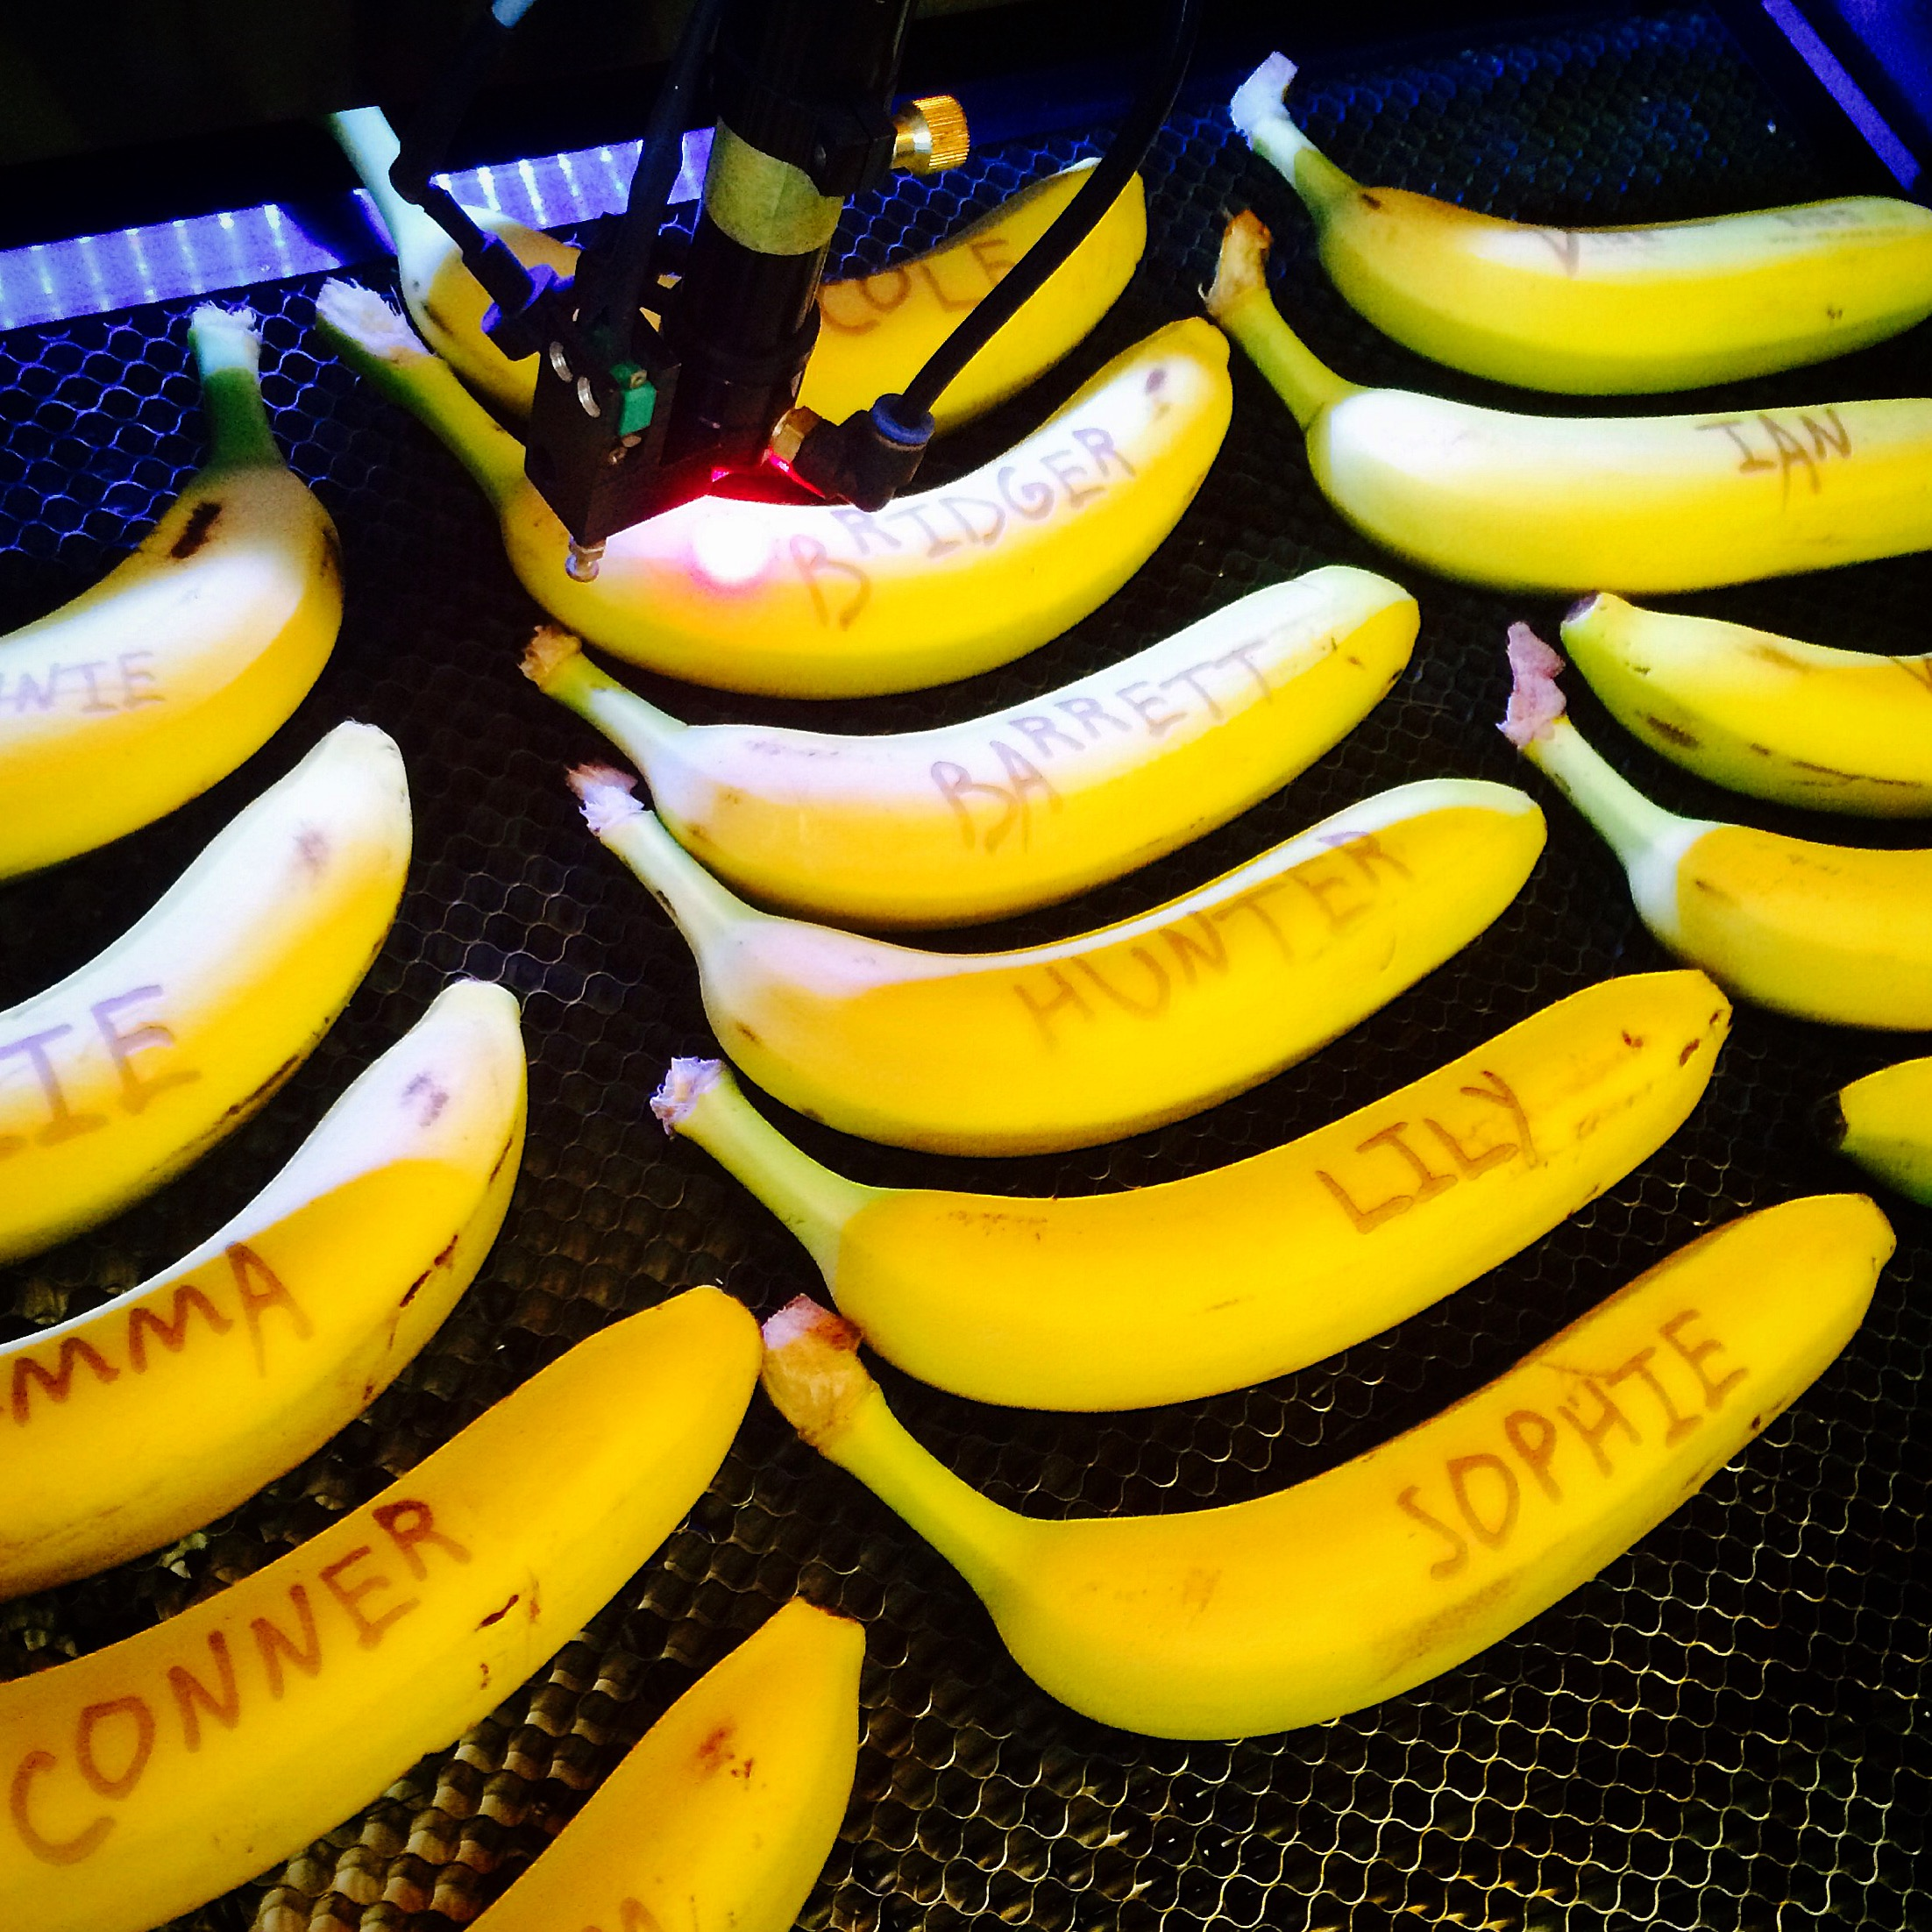 Laser Etched Bananas